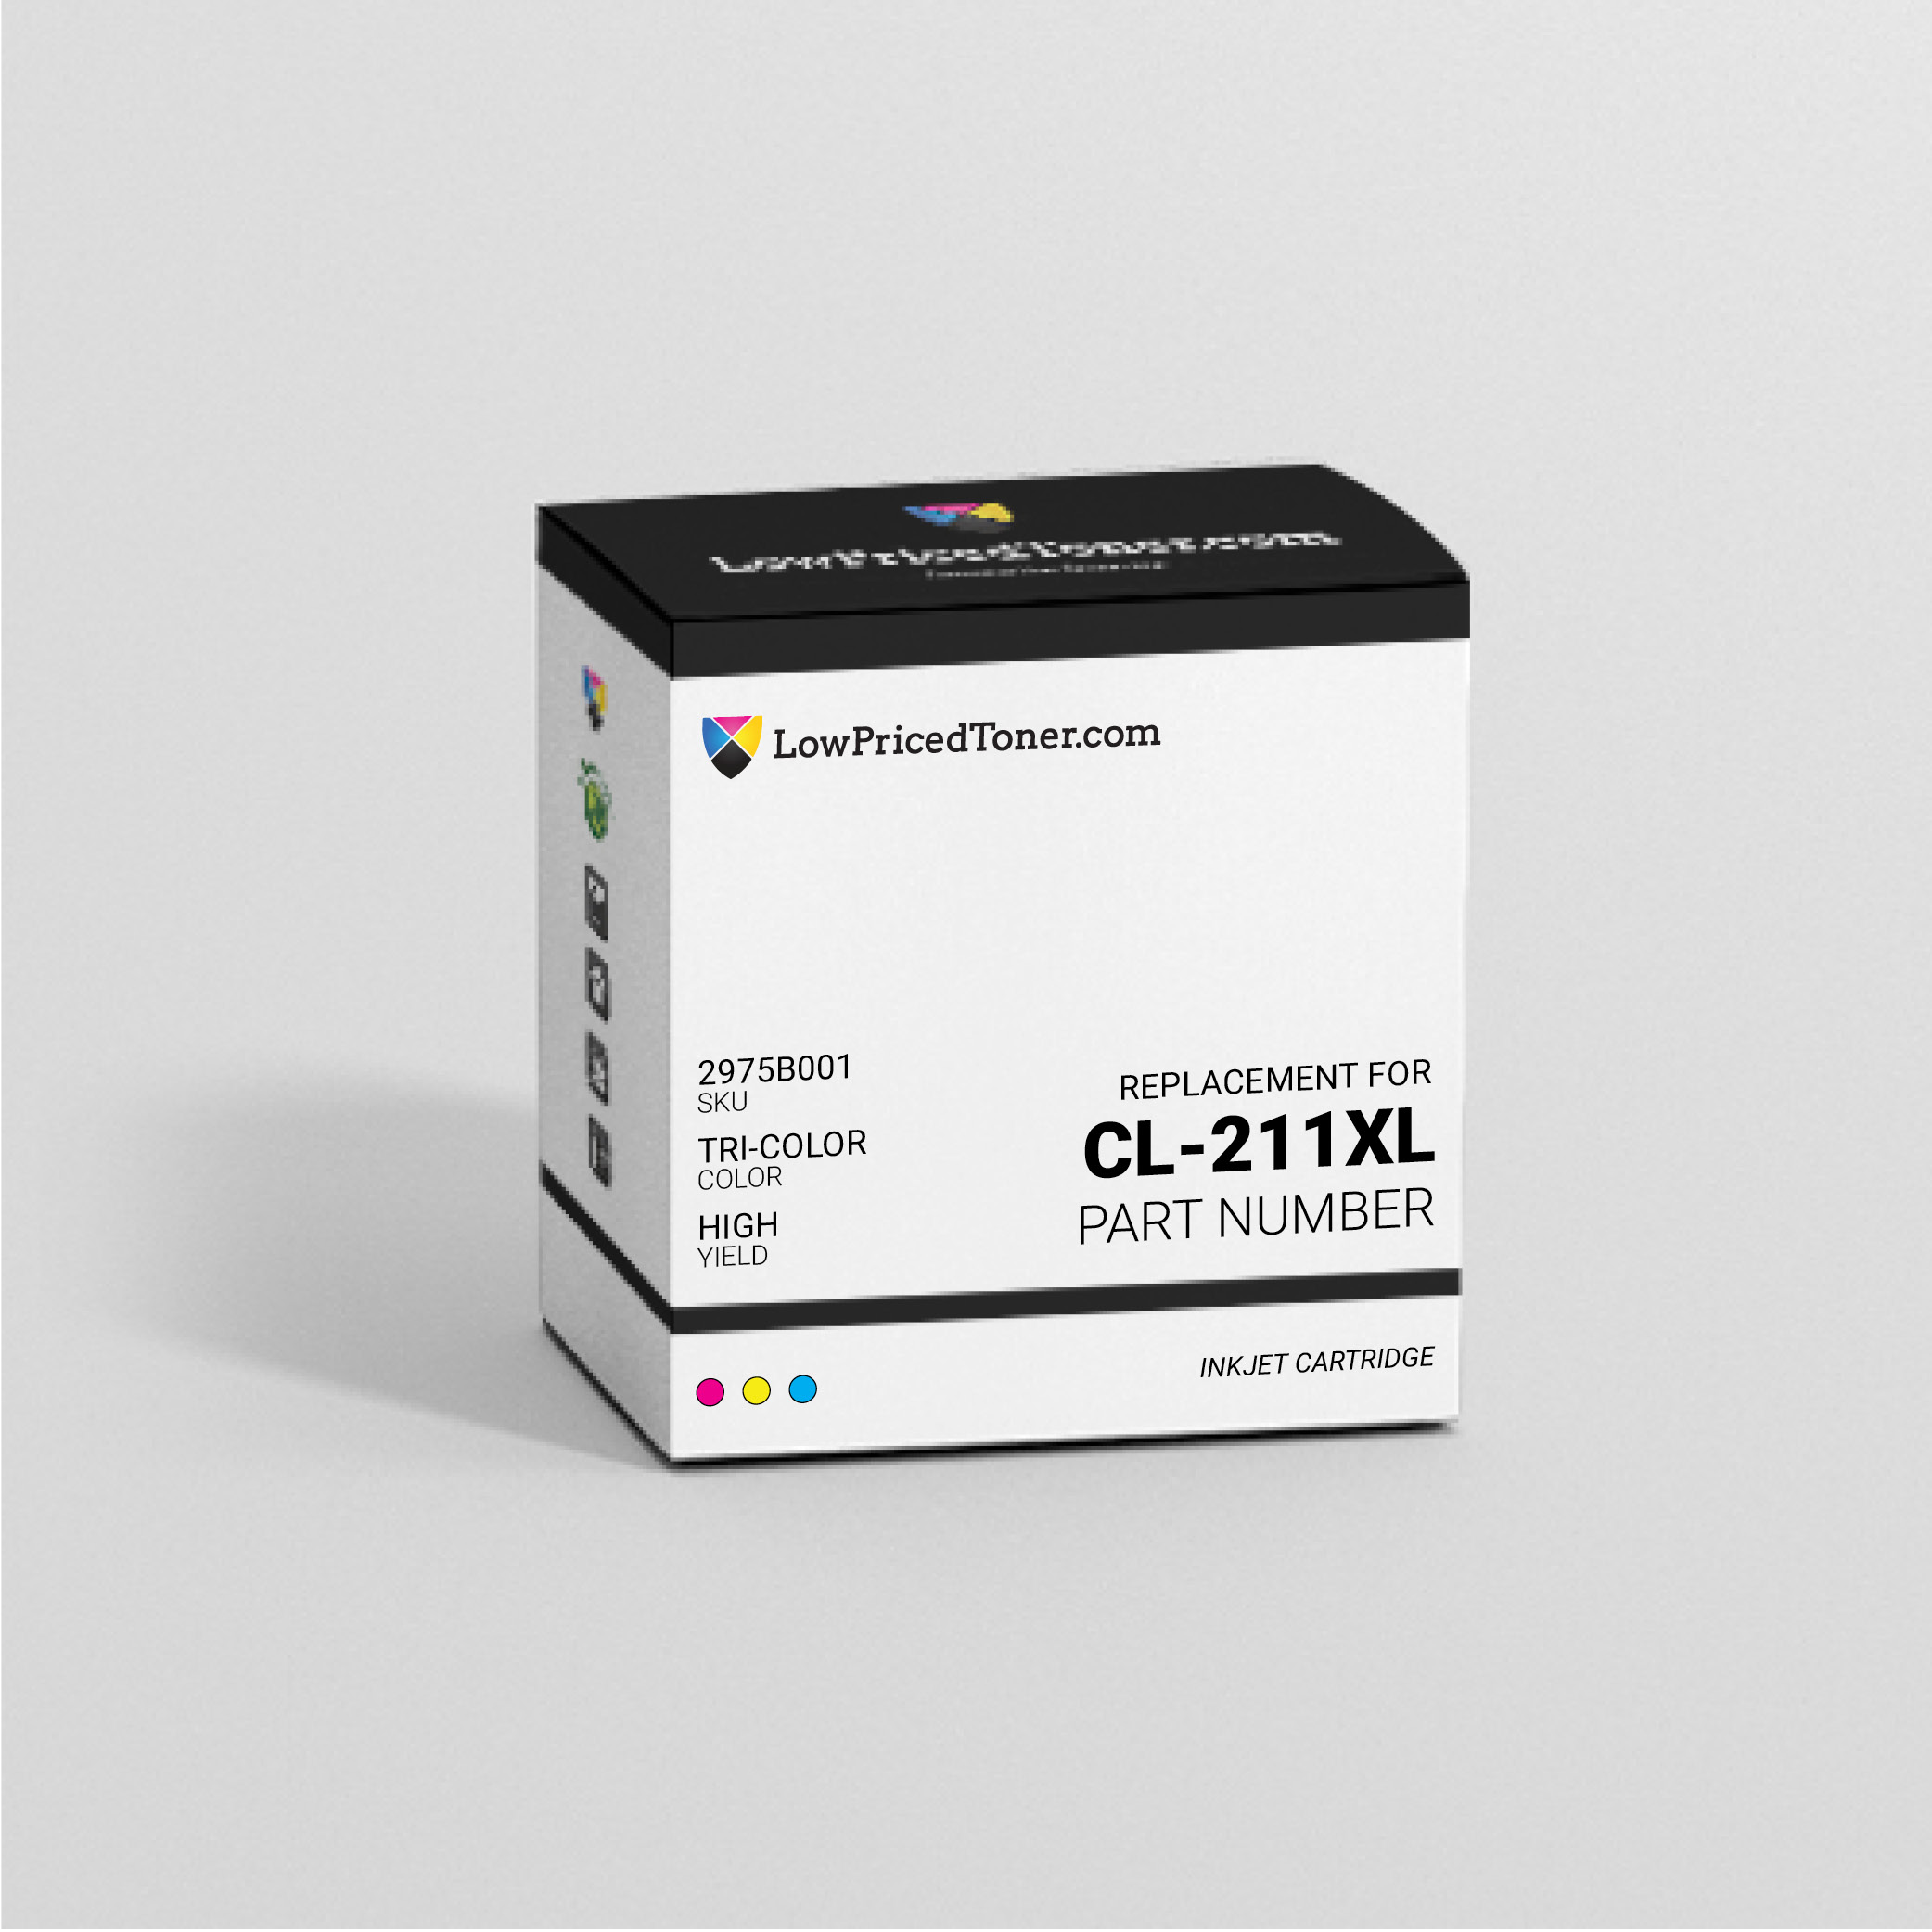 Canon 2975B001 CL-211XL Remanufactured TriColor Ink Cartridge High Yield